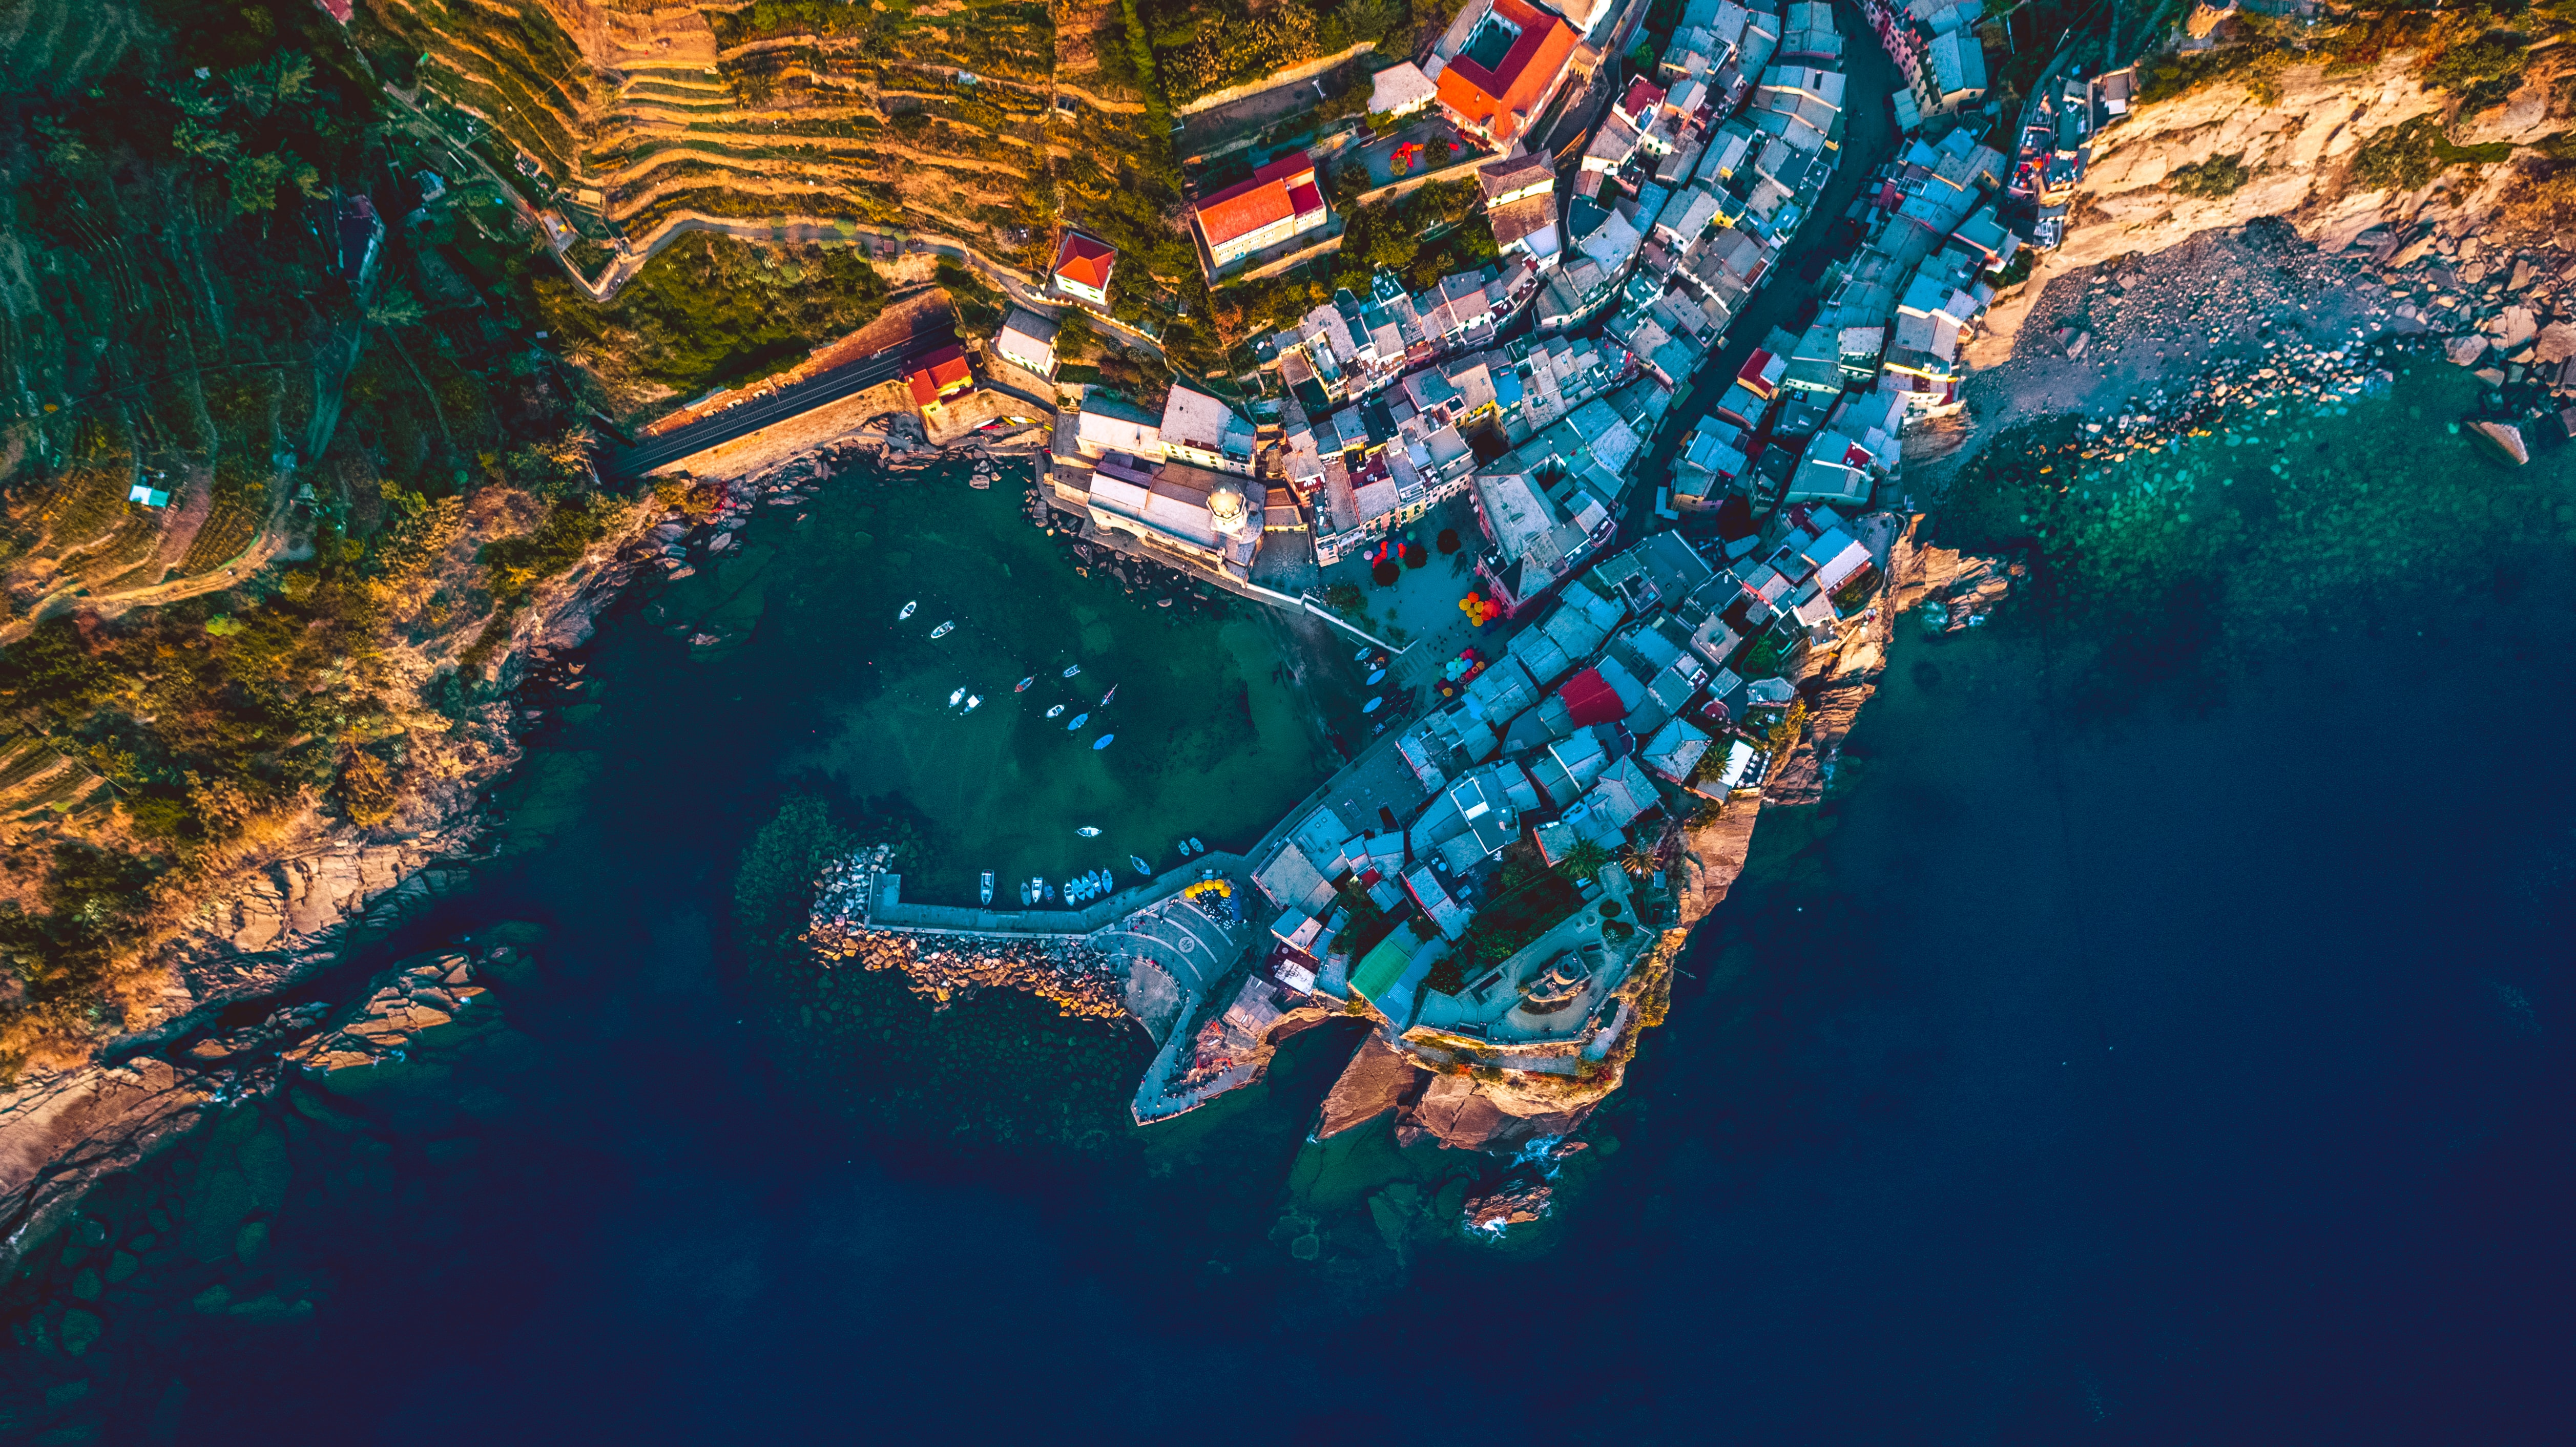 aerial photography of buildings near body of water at daytime